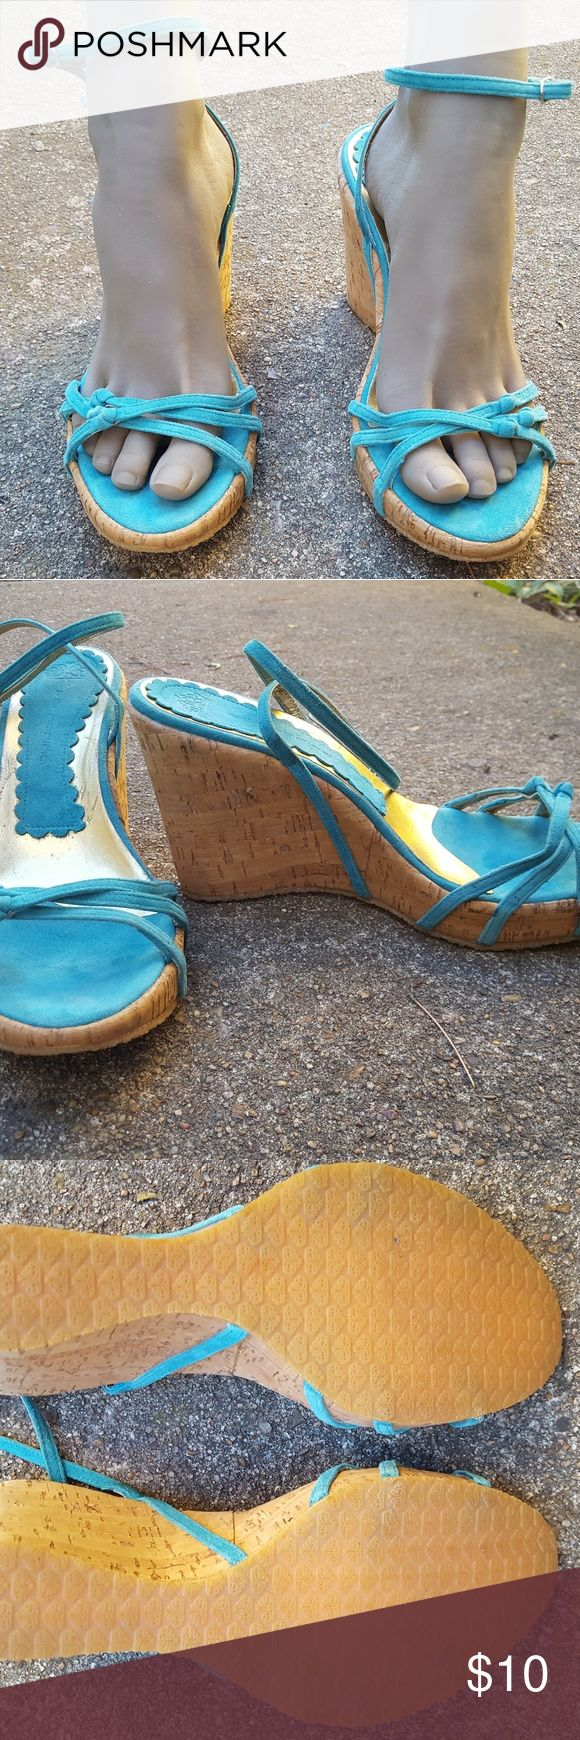 Turquoise Wedge Sandals Re-Posh. There is no size on them, but originally poshed to me as a size 9. They were too big for me and fit more like a 9.5 in my opinion and I am a true 9 with wide foot. The material is either suede or suede-like. 4 inch wedge. Fornarina Shoes Wedges